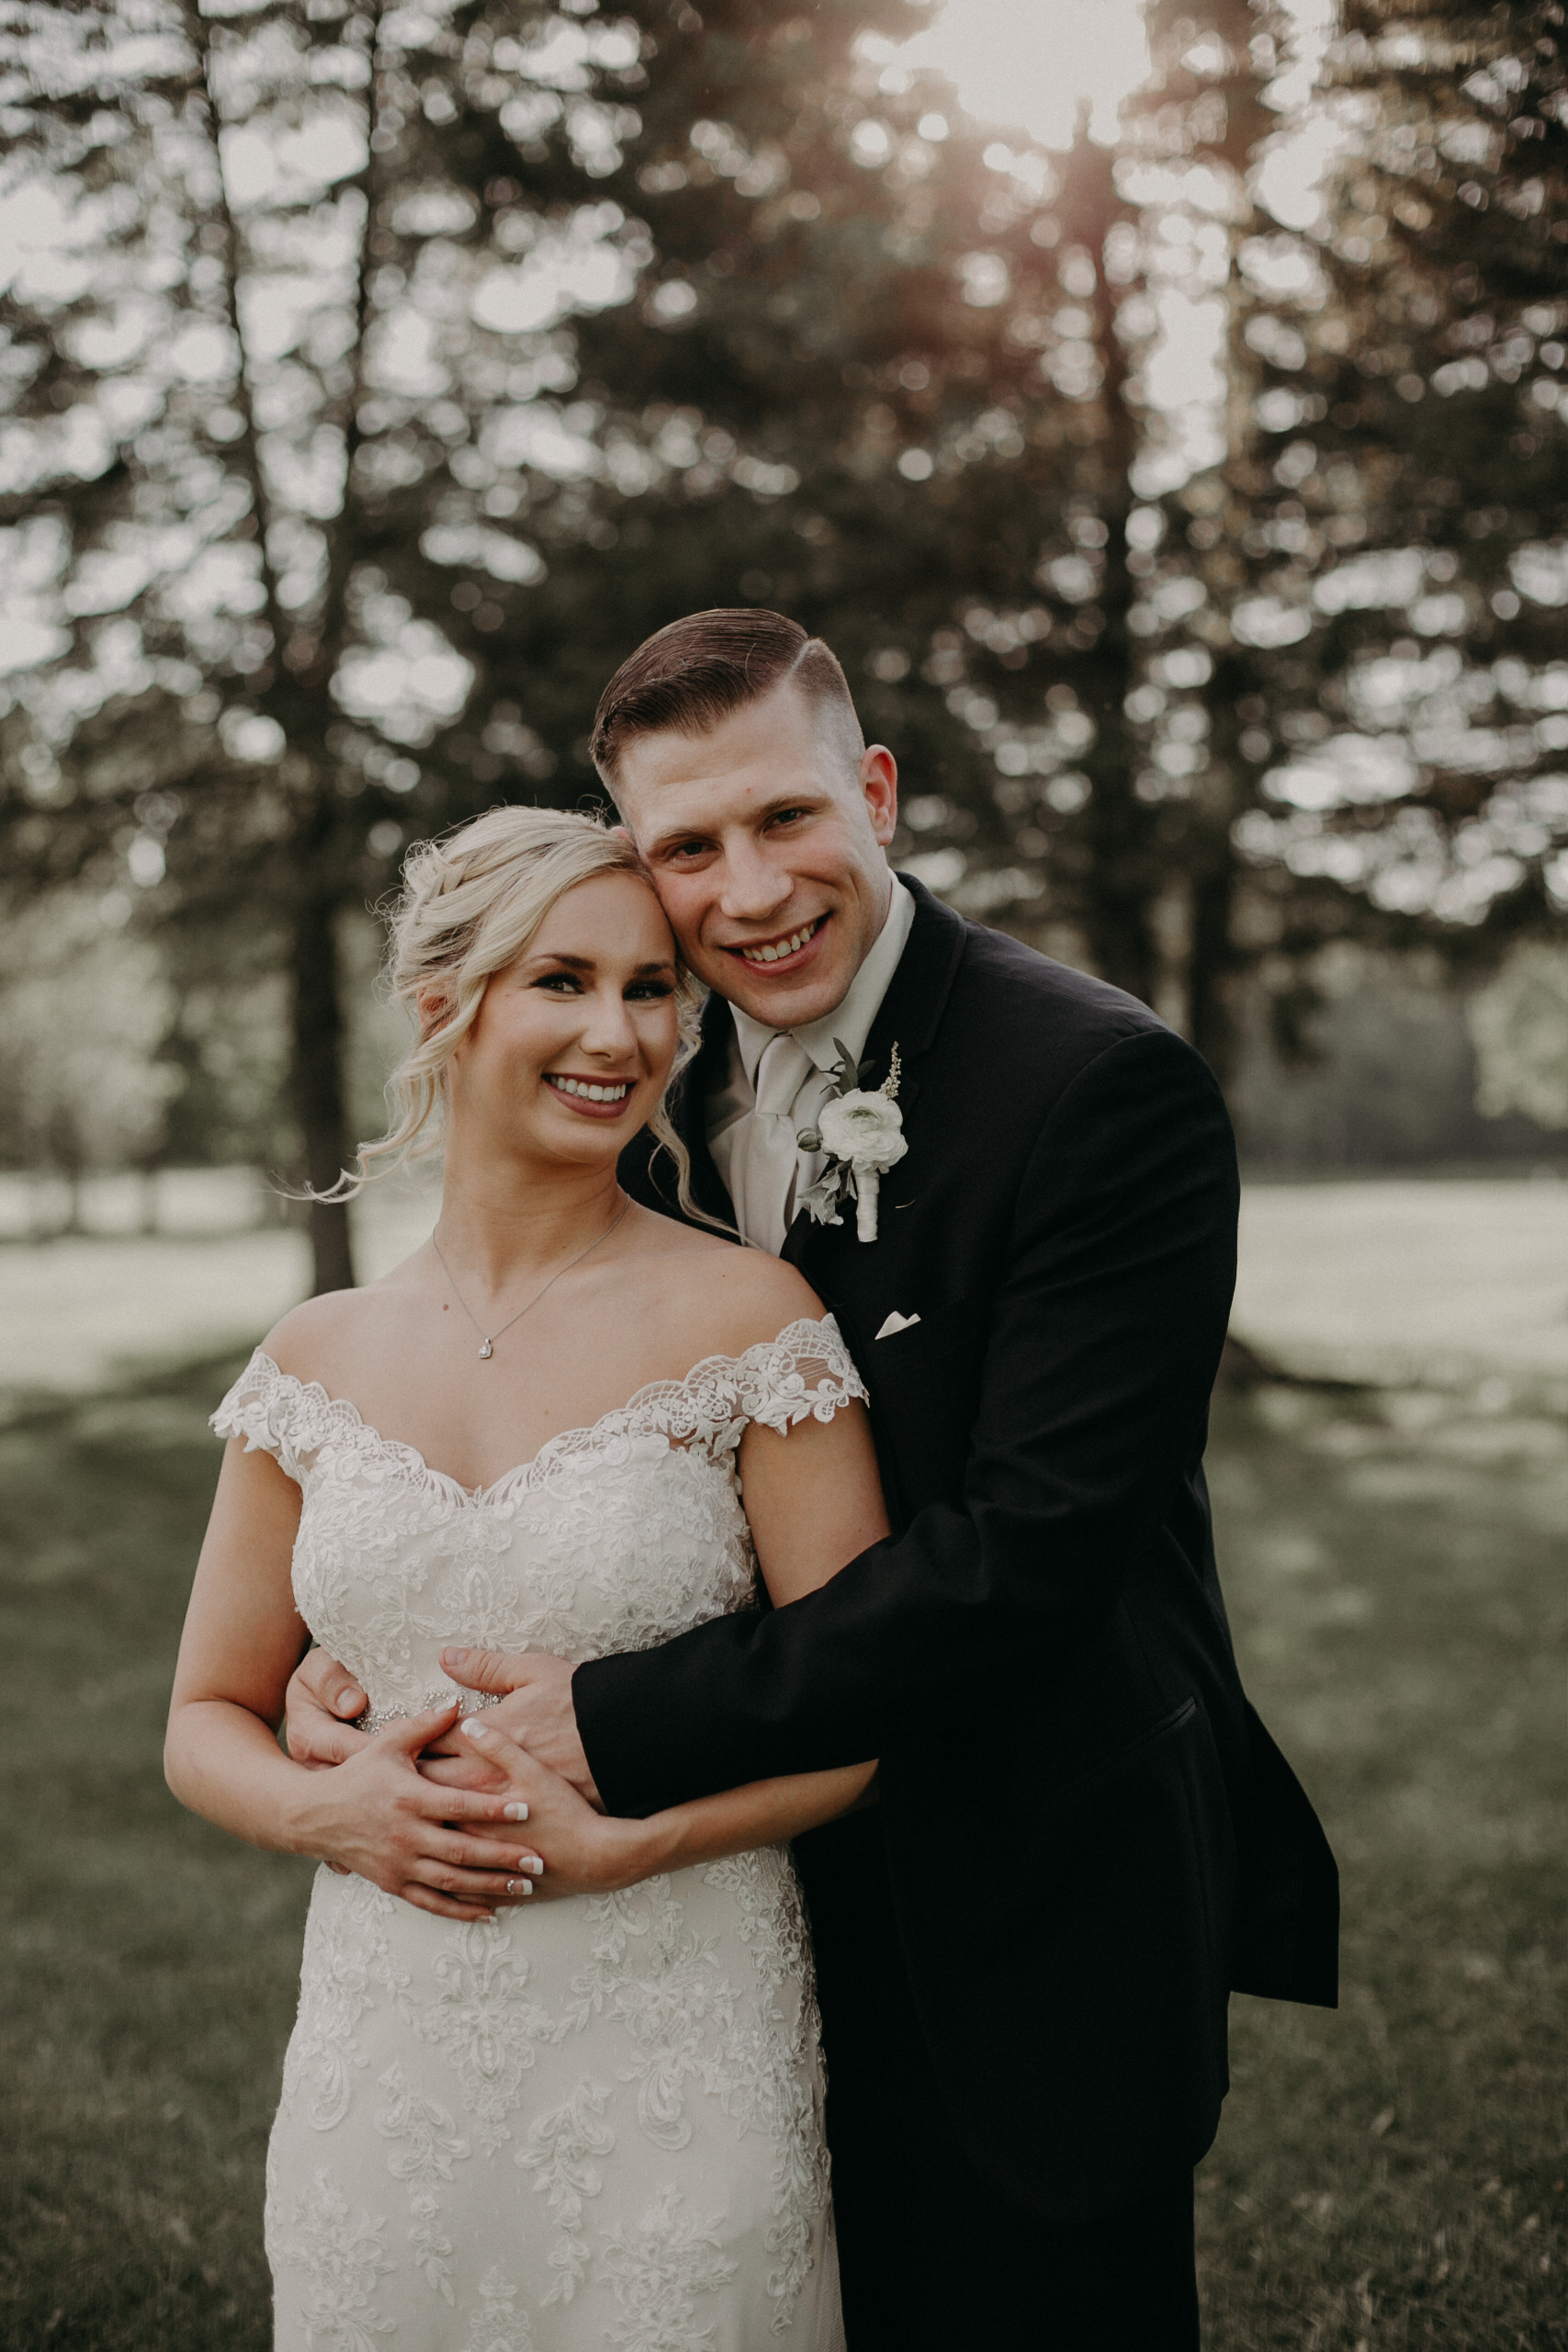 sunset photos of wedding couple in Marshfield WI at RiverEdge Golf Club